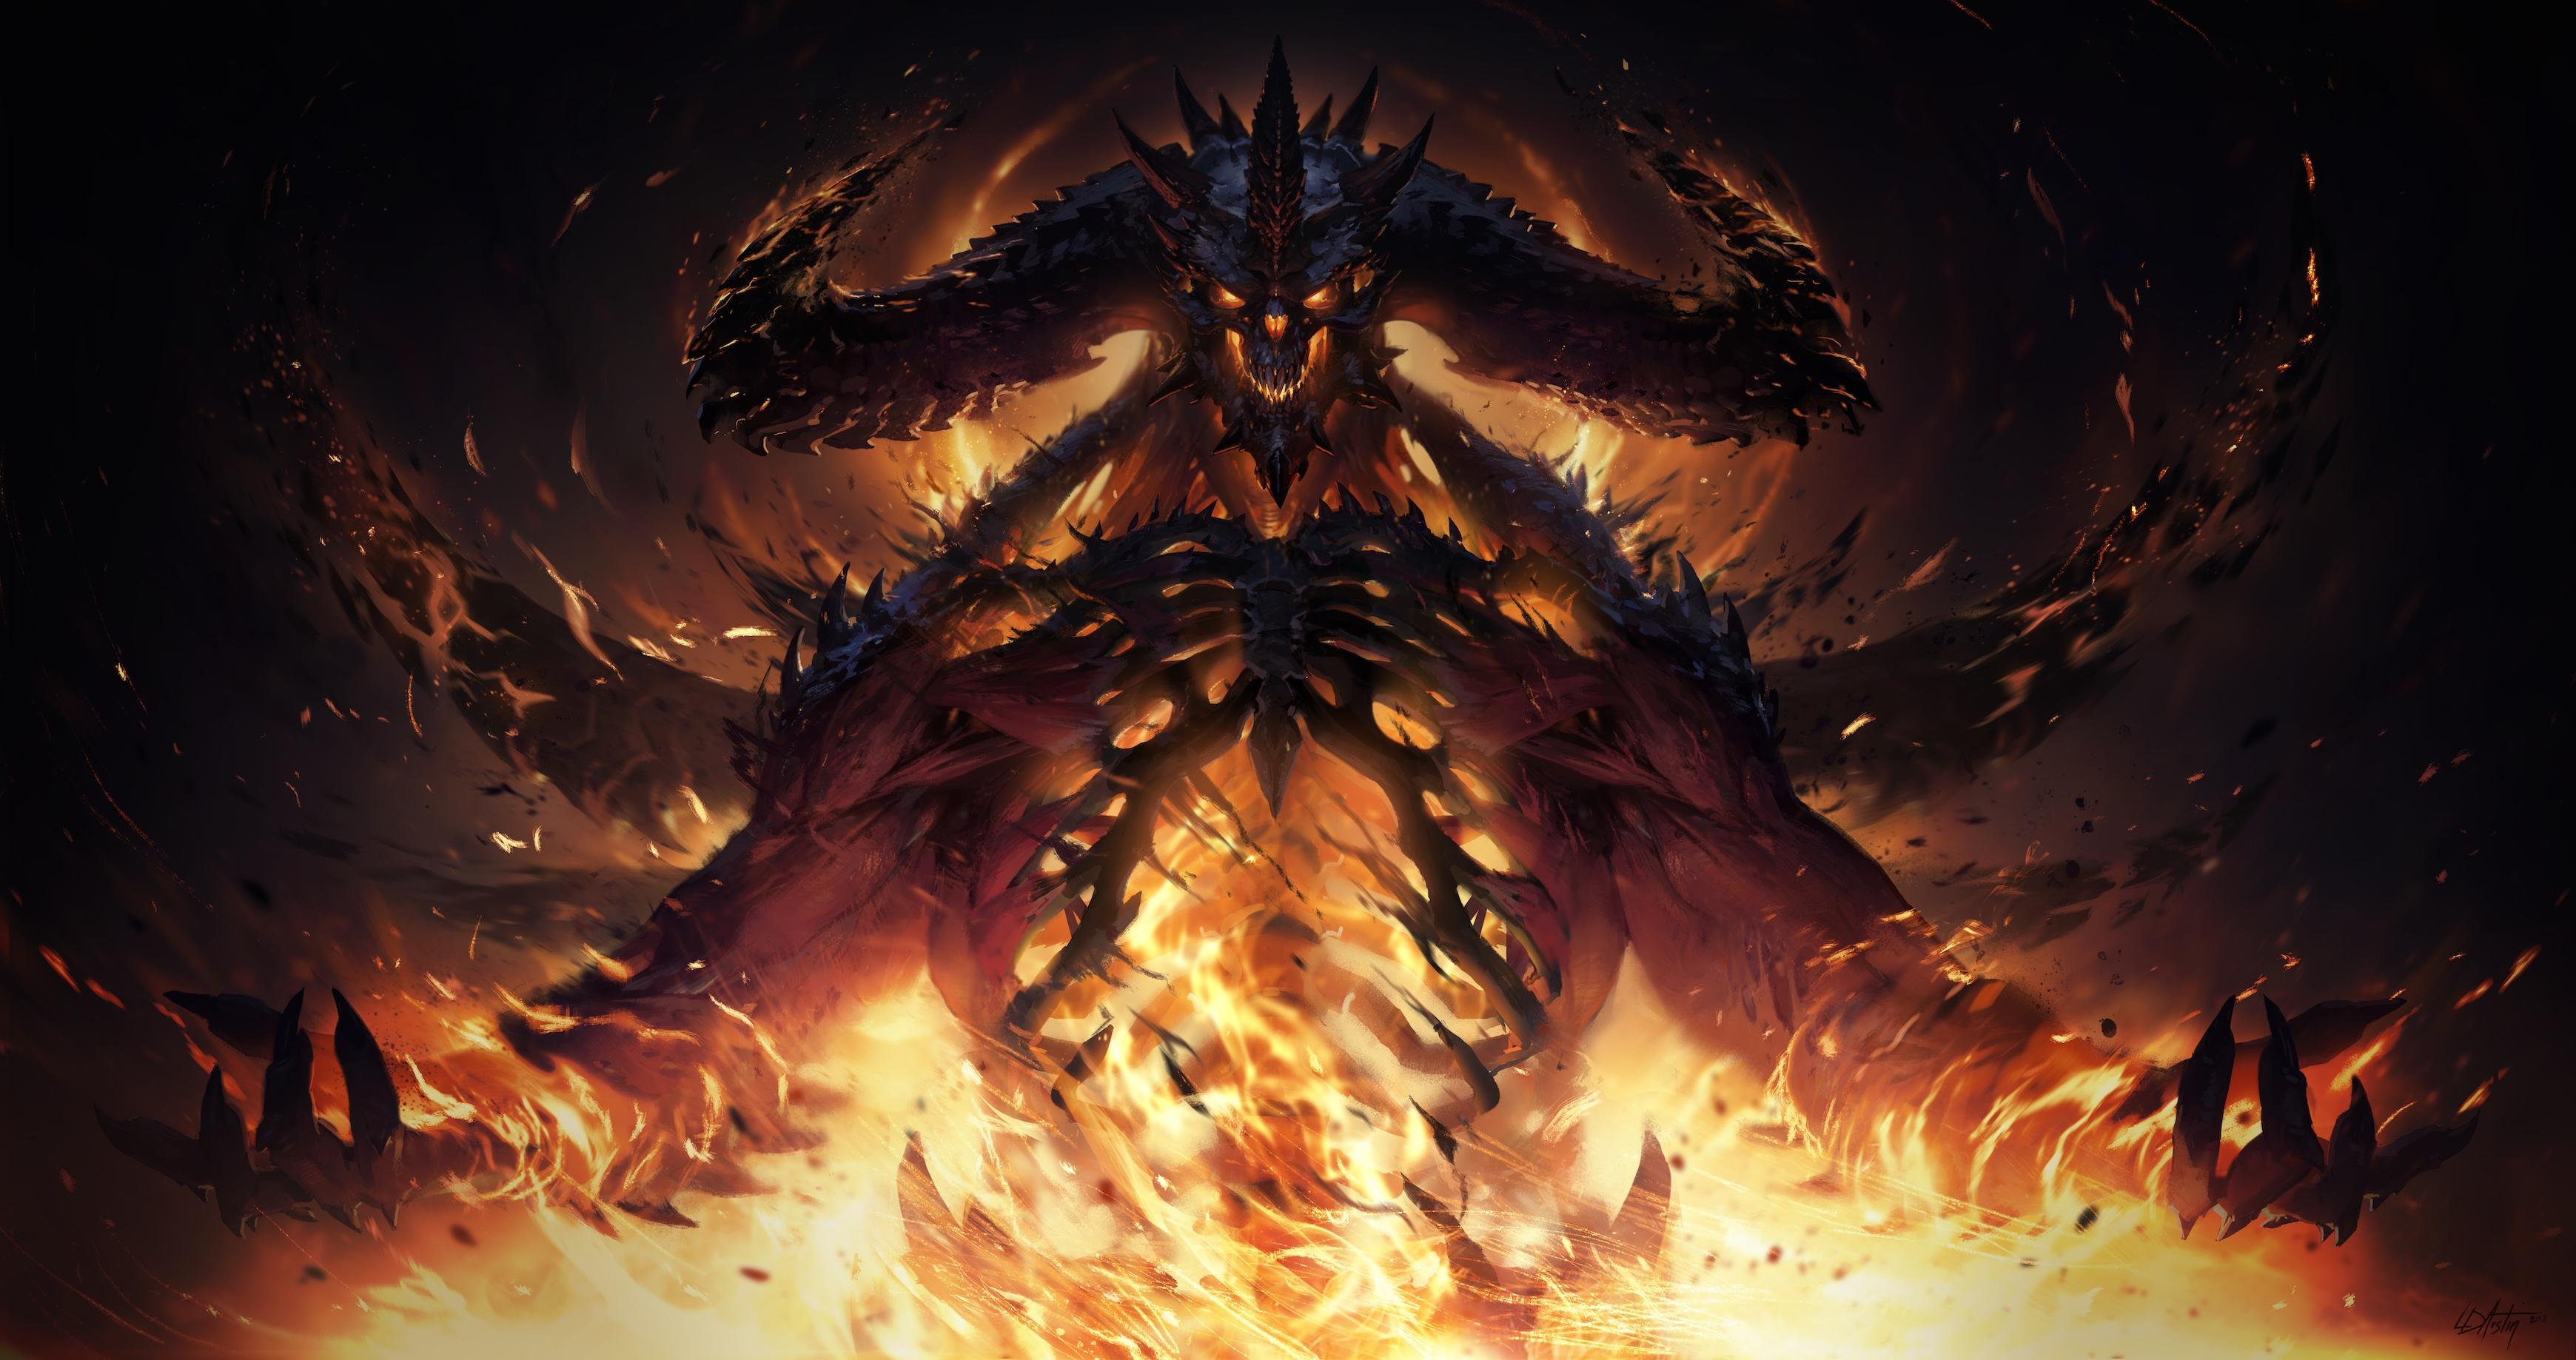 Diablo 4 outed in ad for Diablo art book